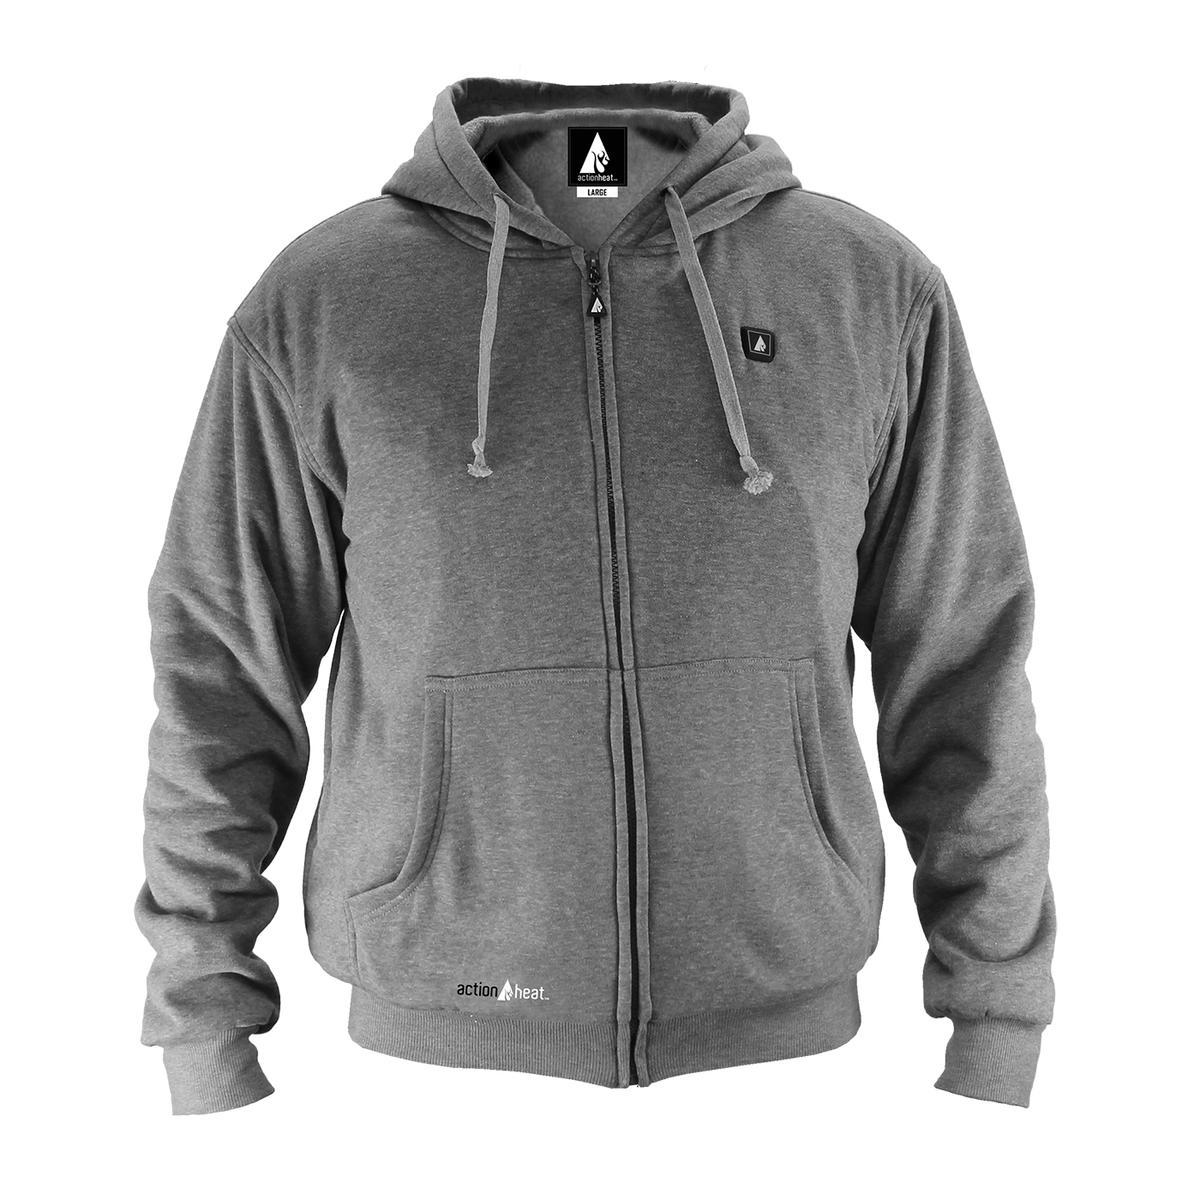 Open Box ActionHeat 5V Battery Heated Hoodie Sweatshirt - Front